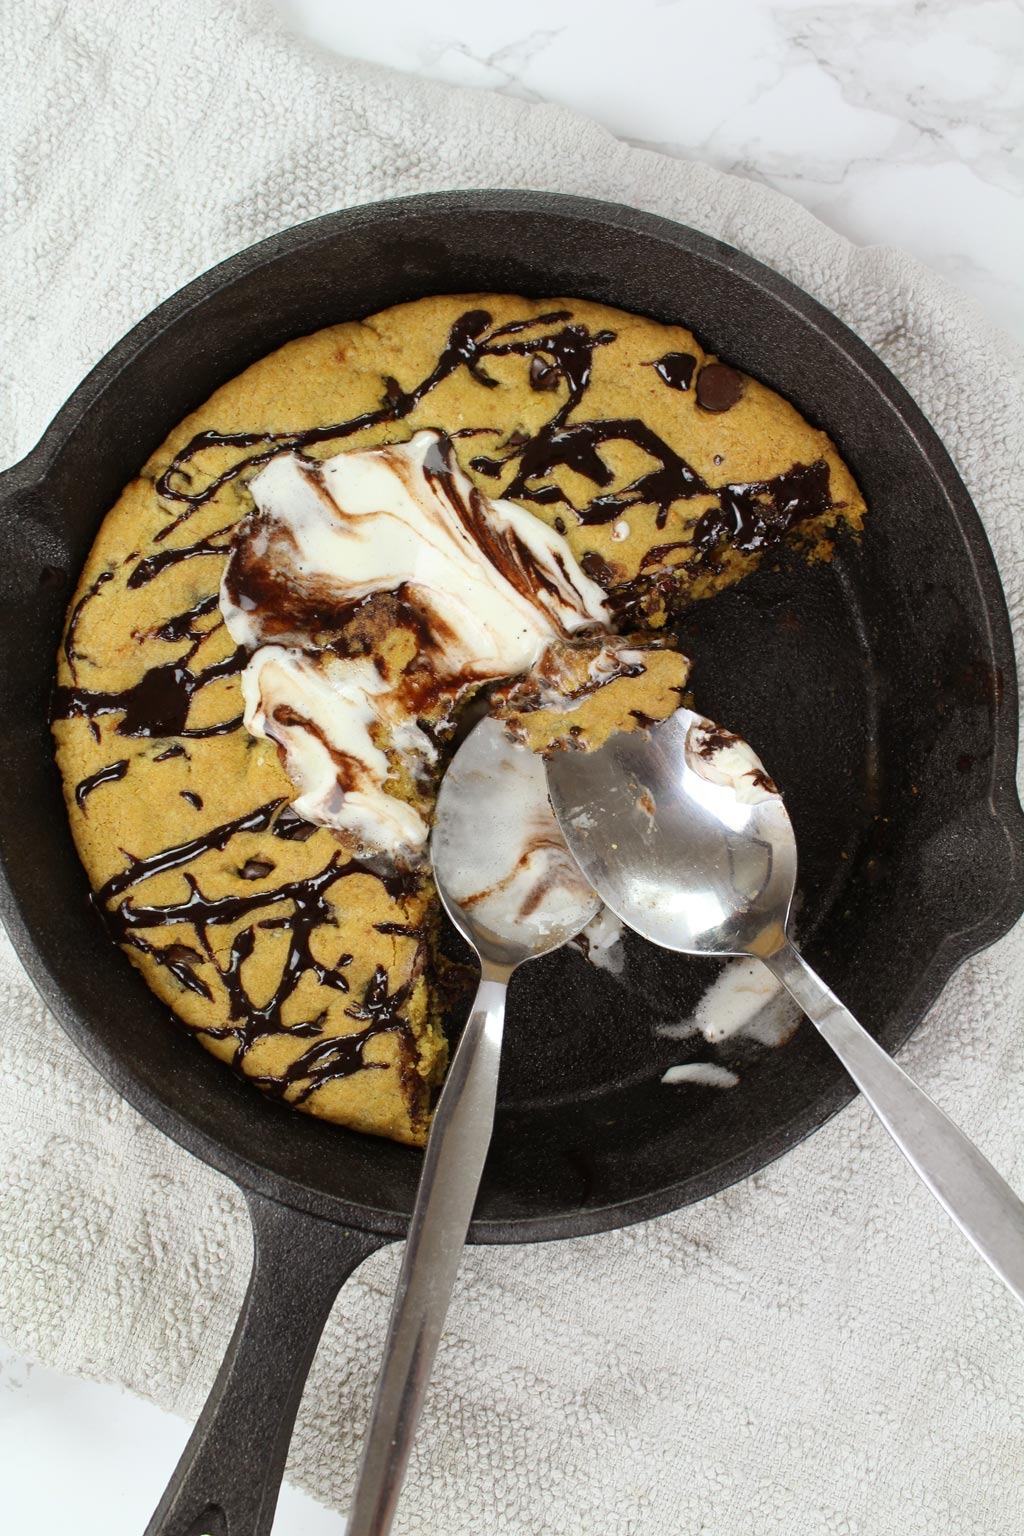 Half eaten pizza hut cookie dough in skillet